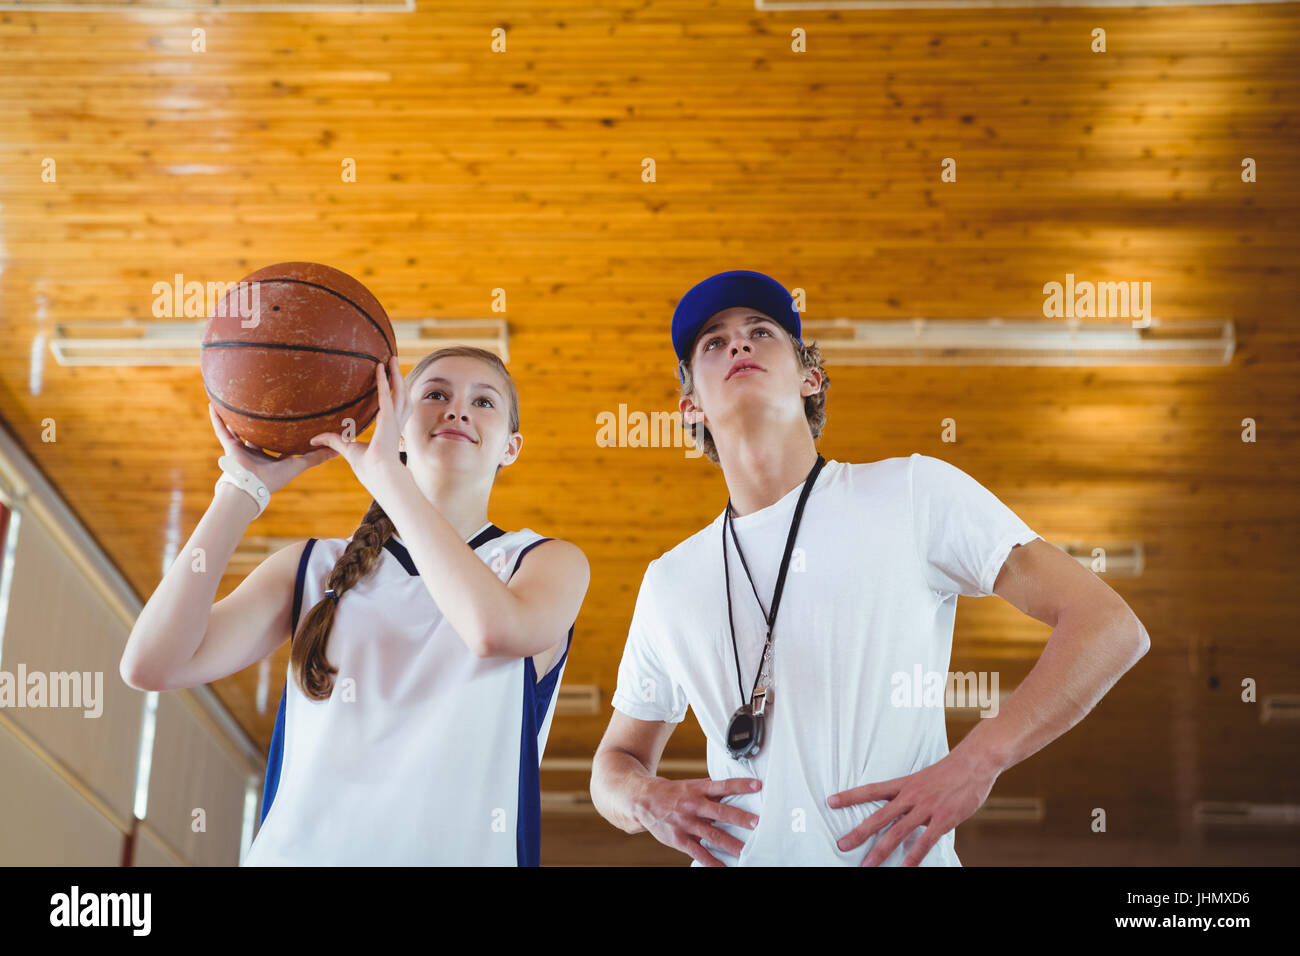 Low angle view of male coach advising female basketball player while practicing in court - Stock Image